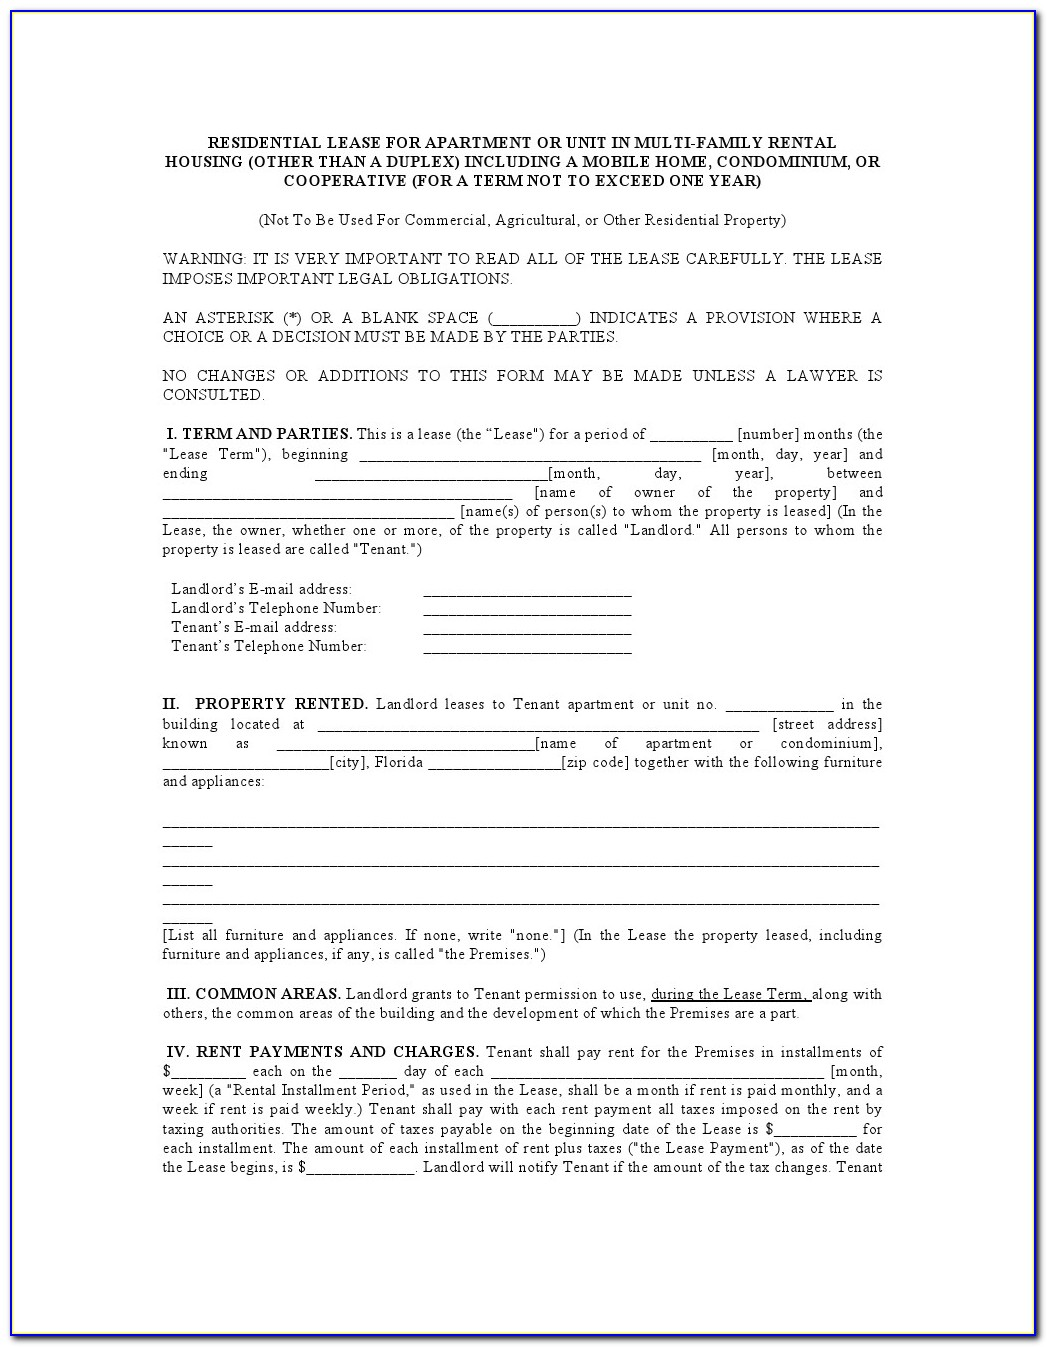 Residential Lease Agreement Florida Condo